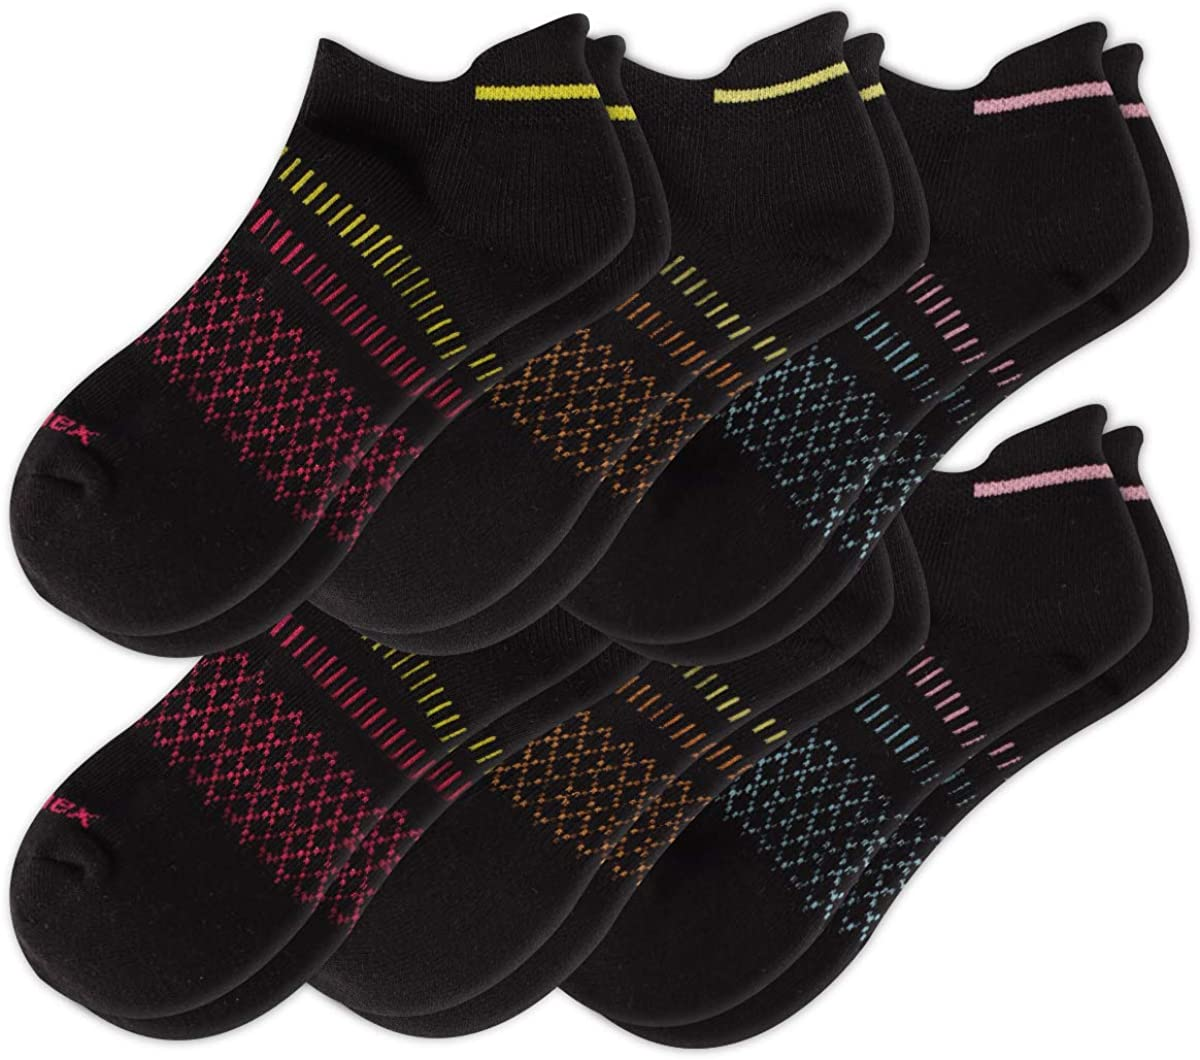 Comfoex Womens Ankle Socks Cotton 6 Pairs Athletic Running Cushioned Socks With Tab